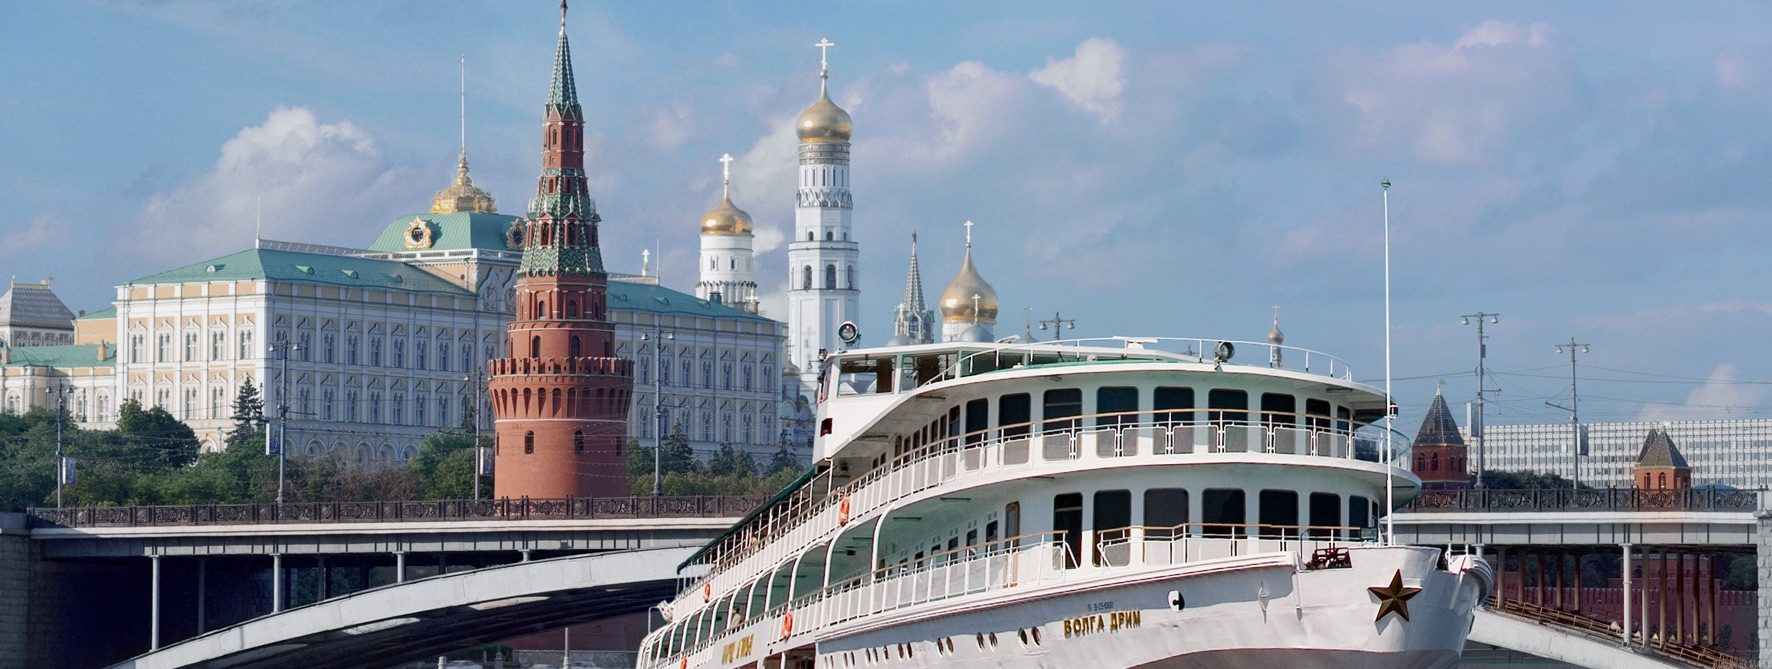 Volga Dream - Russia